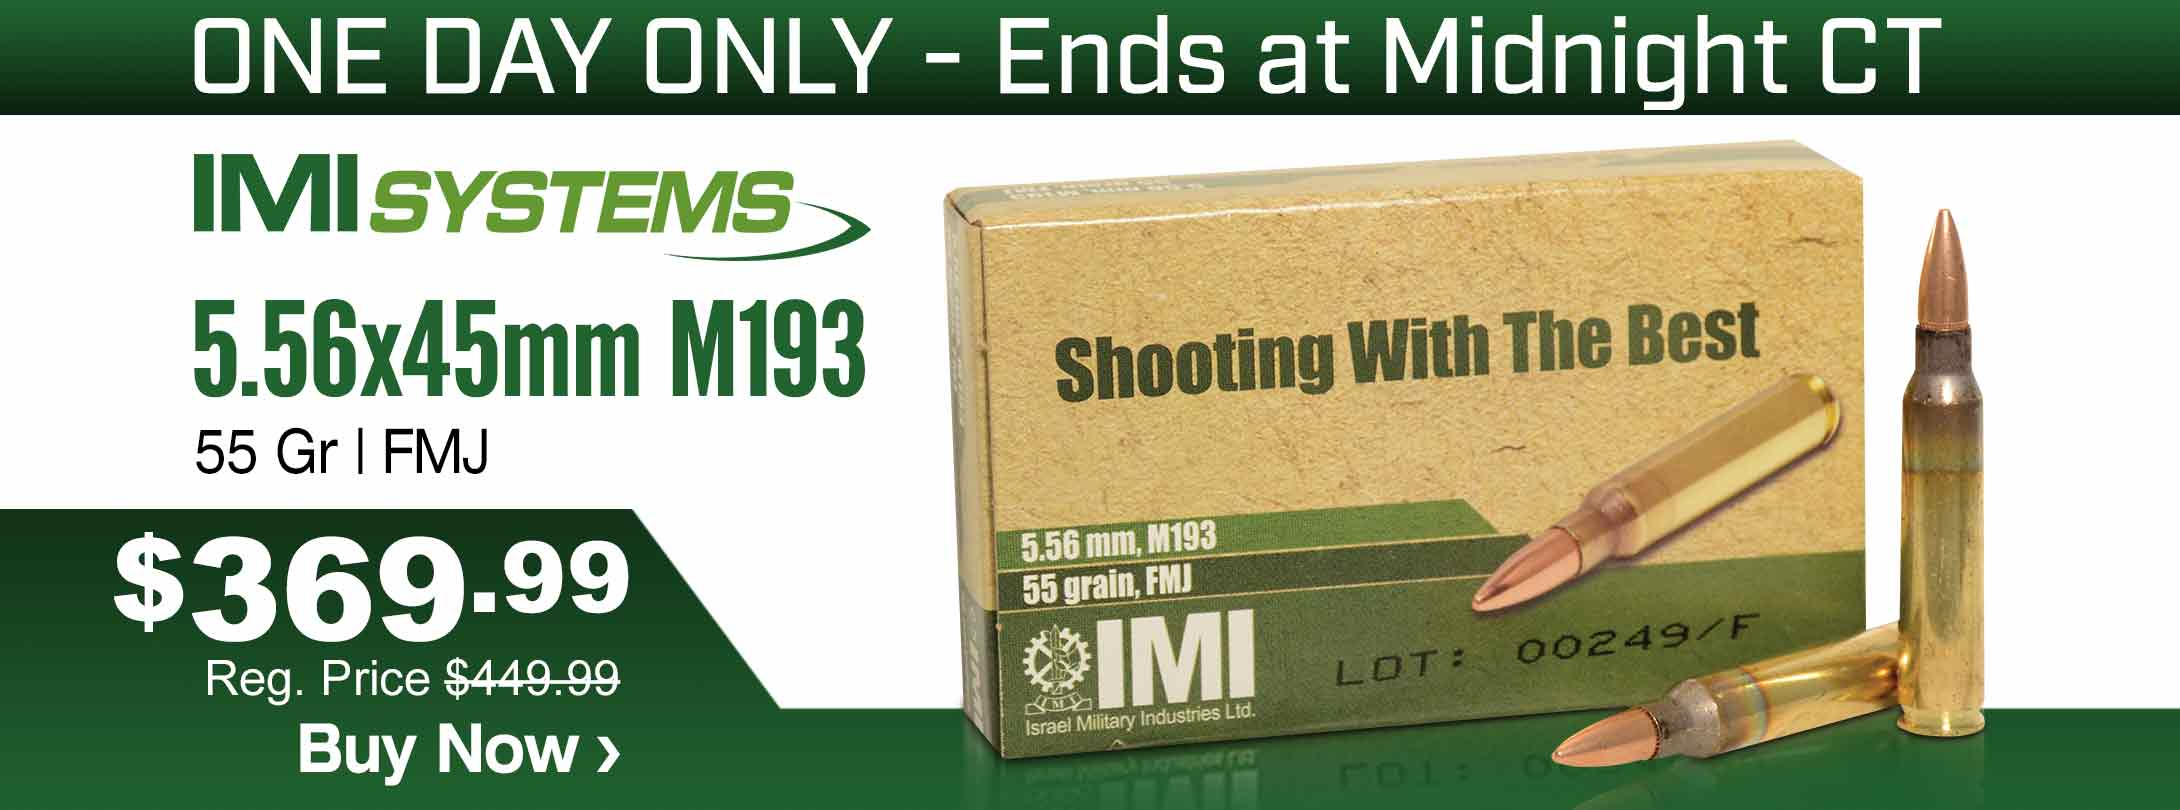 Save on IMI 5.56x45mm Ammo